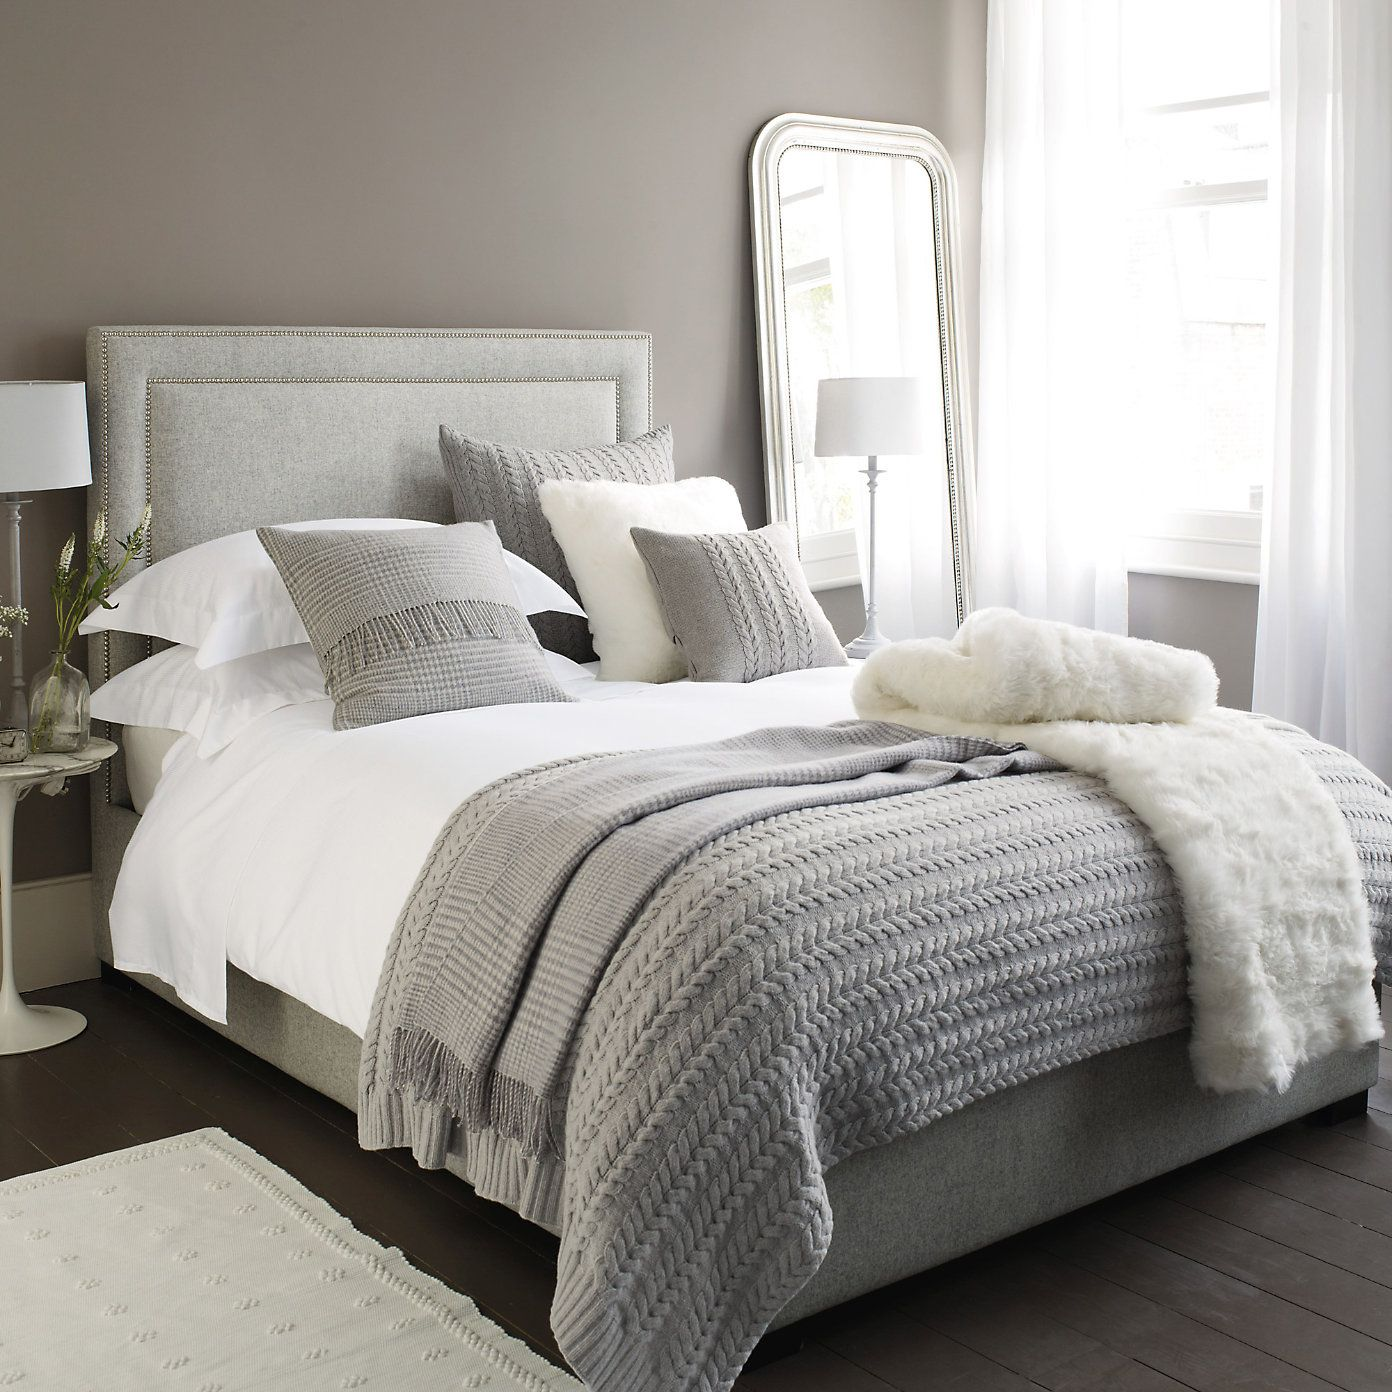 Gray Bedroom Decorating Ideas: The White Company, White Fur, Grey Bedding